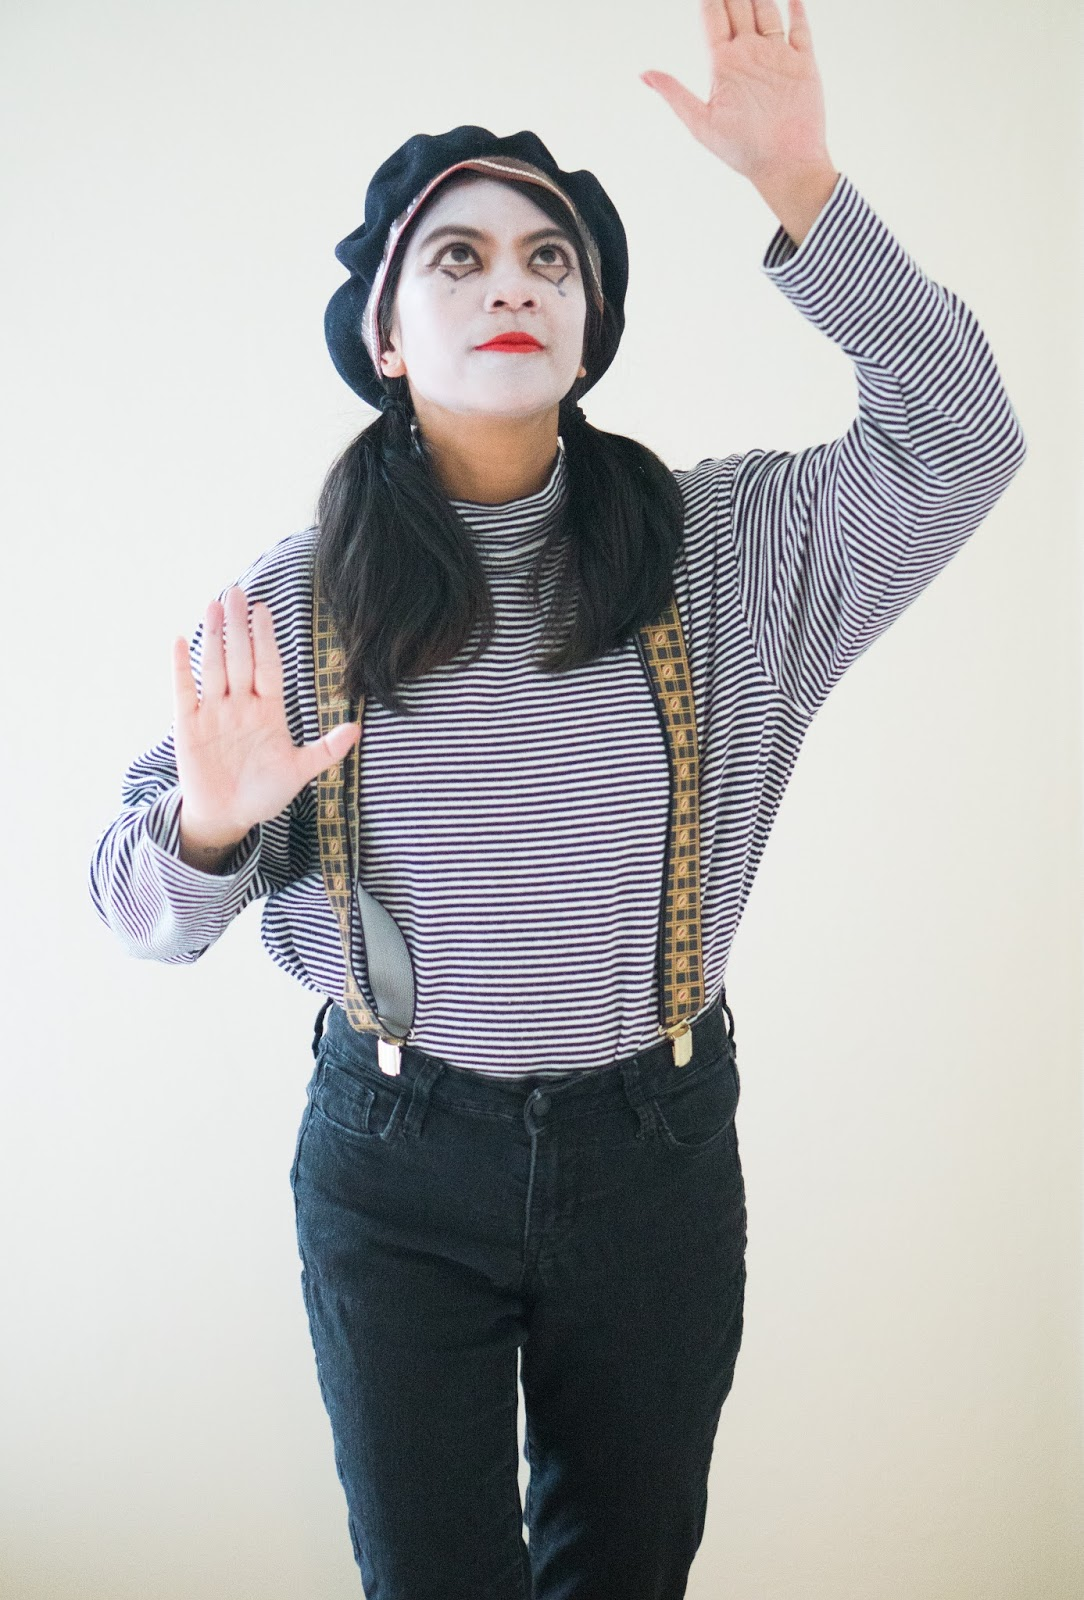 halloween, halloween costume, thrifting, thrift store finds, portland blogger, portland fashion and lifestyle blogger, mime, mary poppins, scarecrow